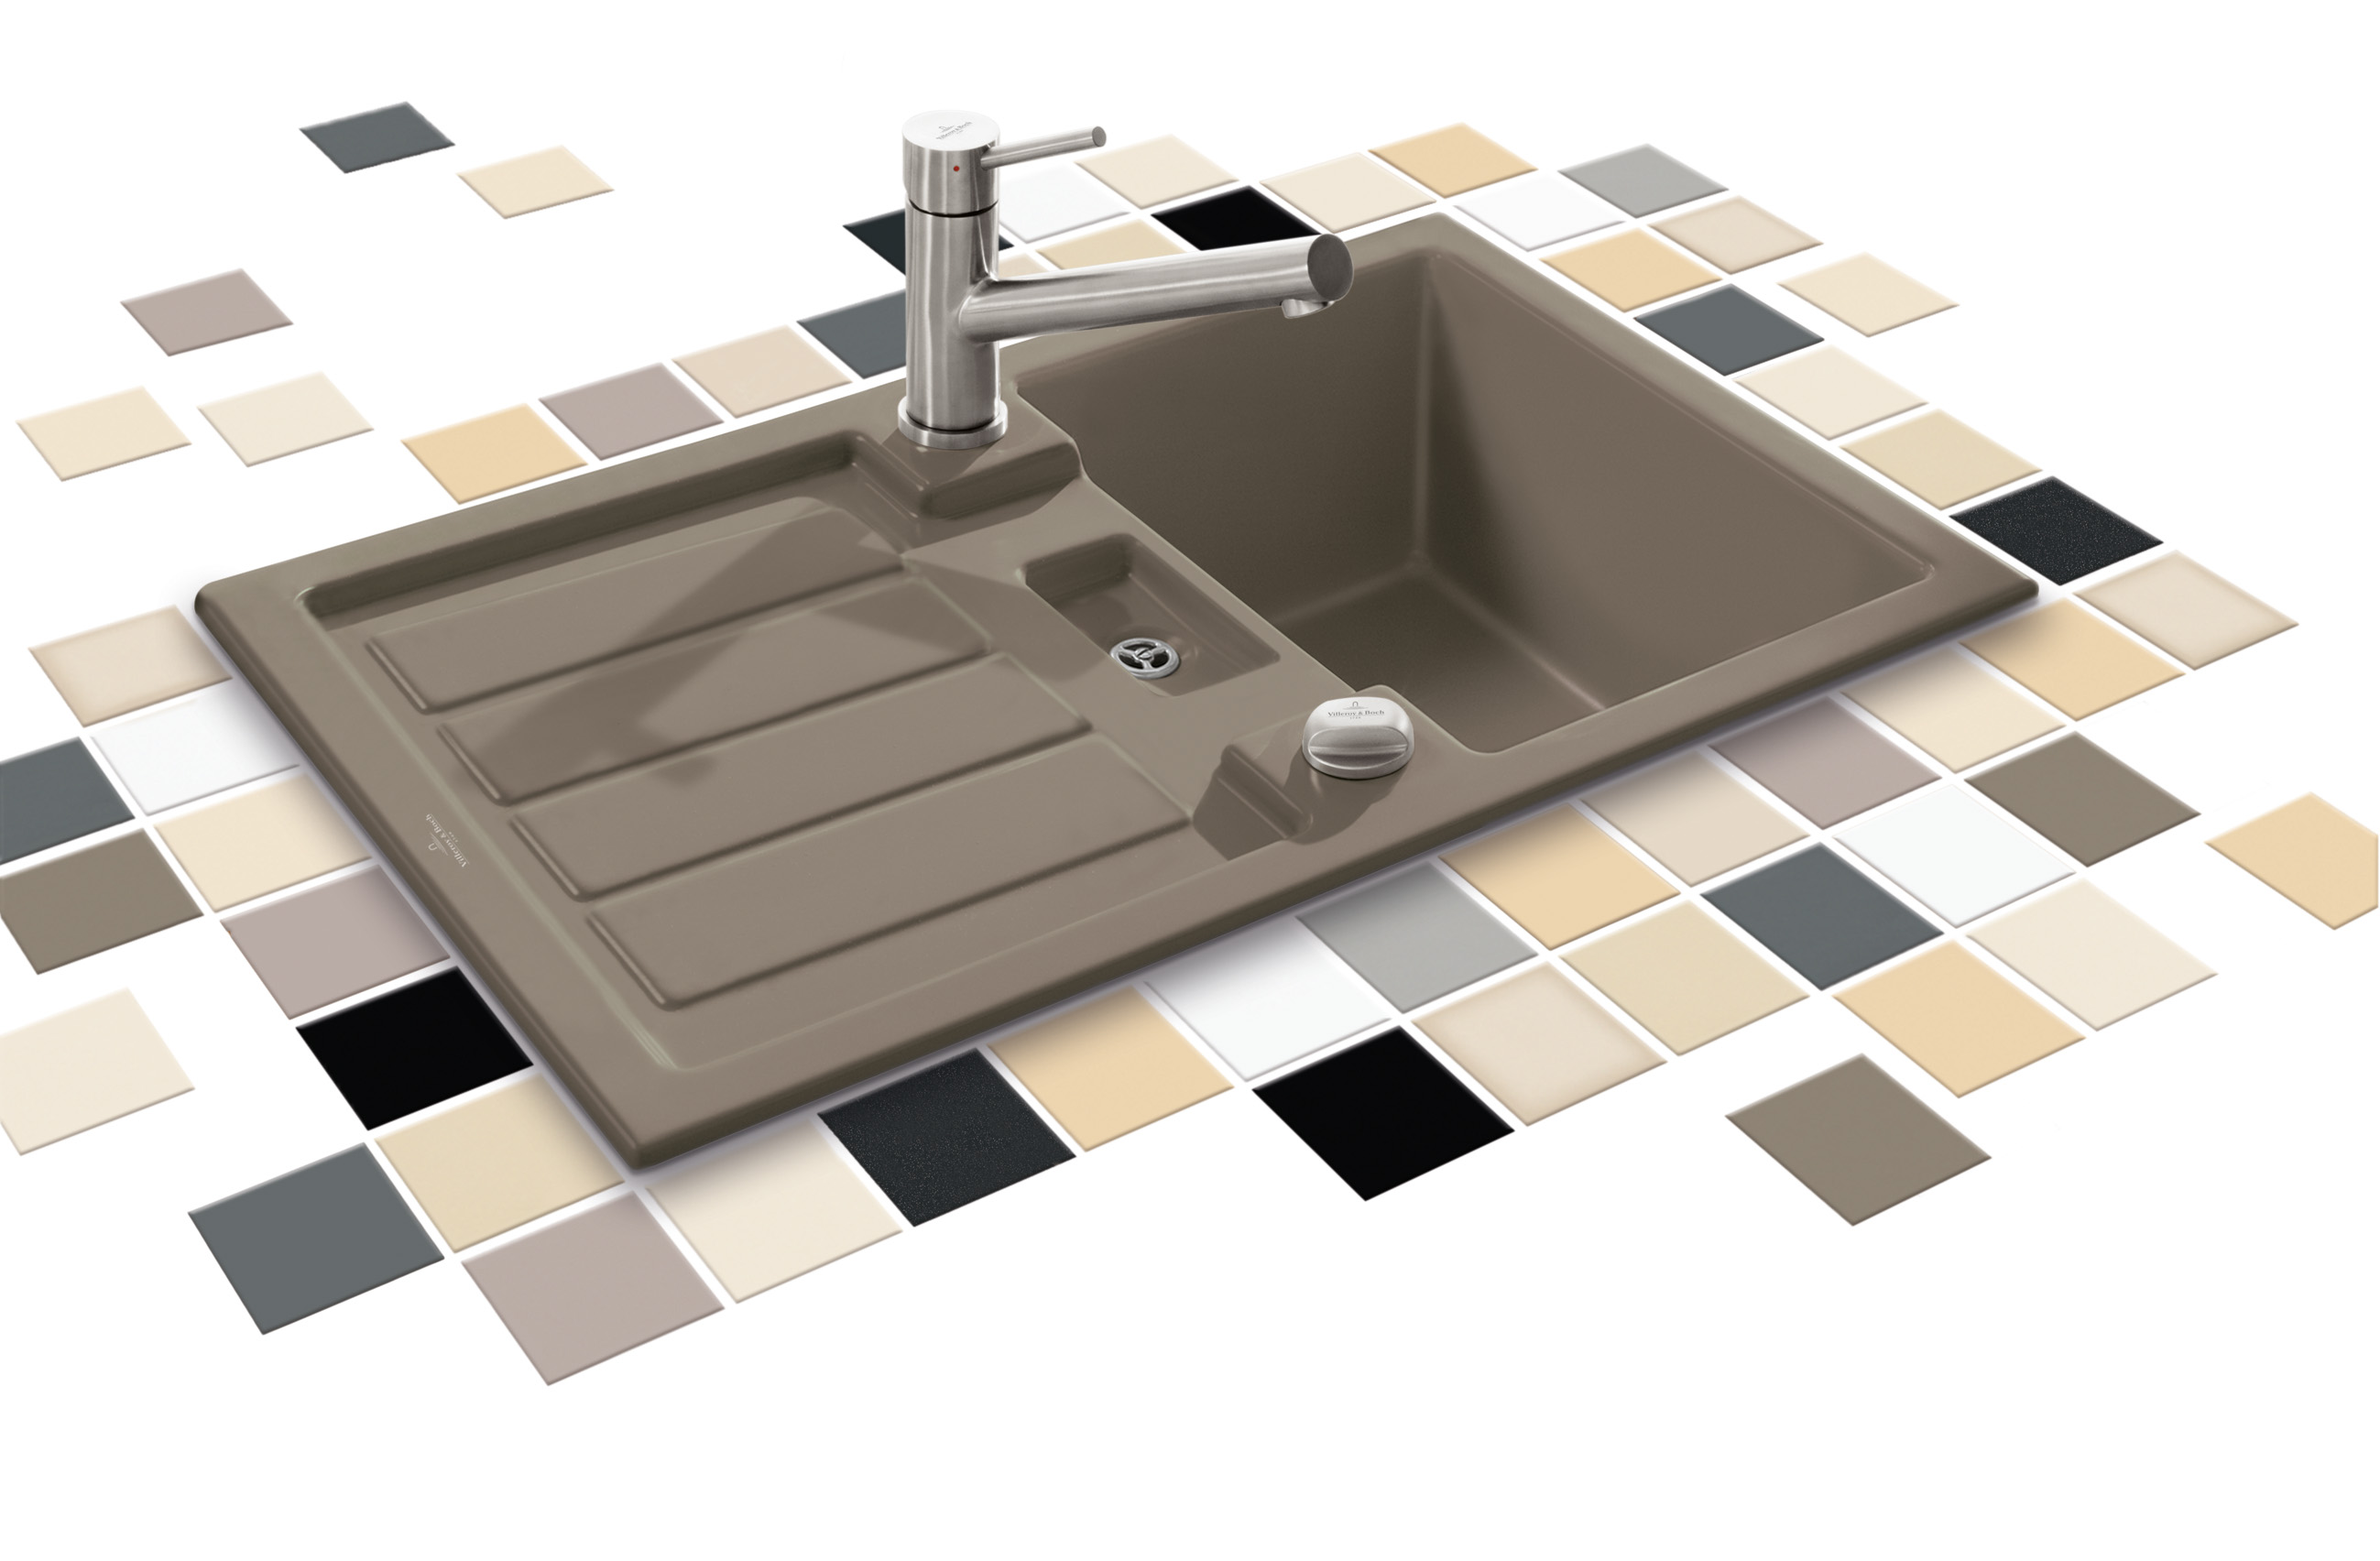 Flavia Built-in sinks